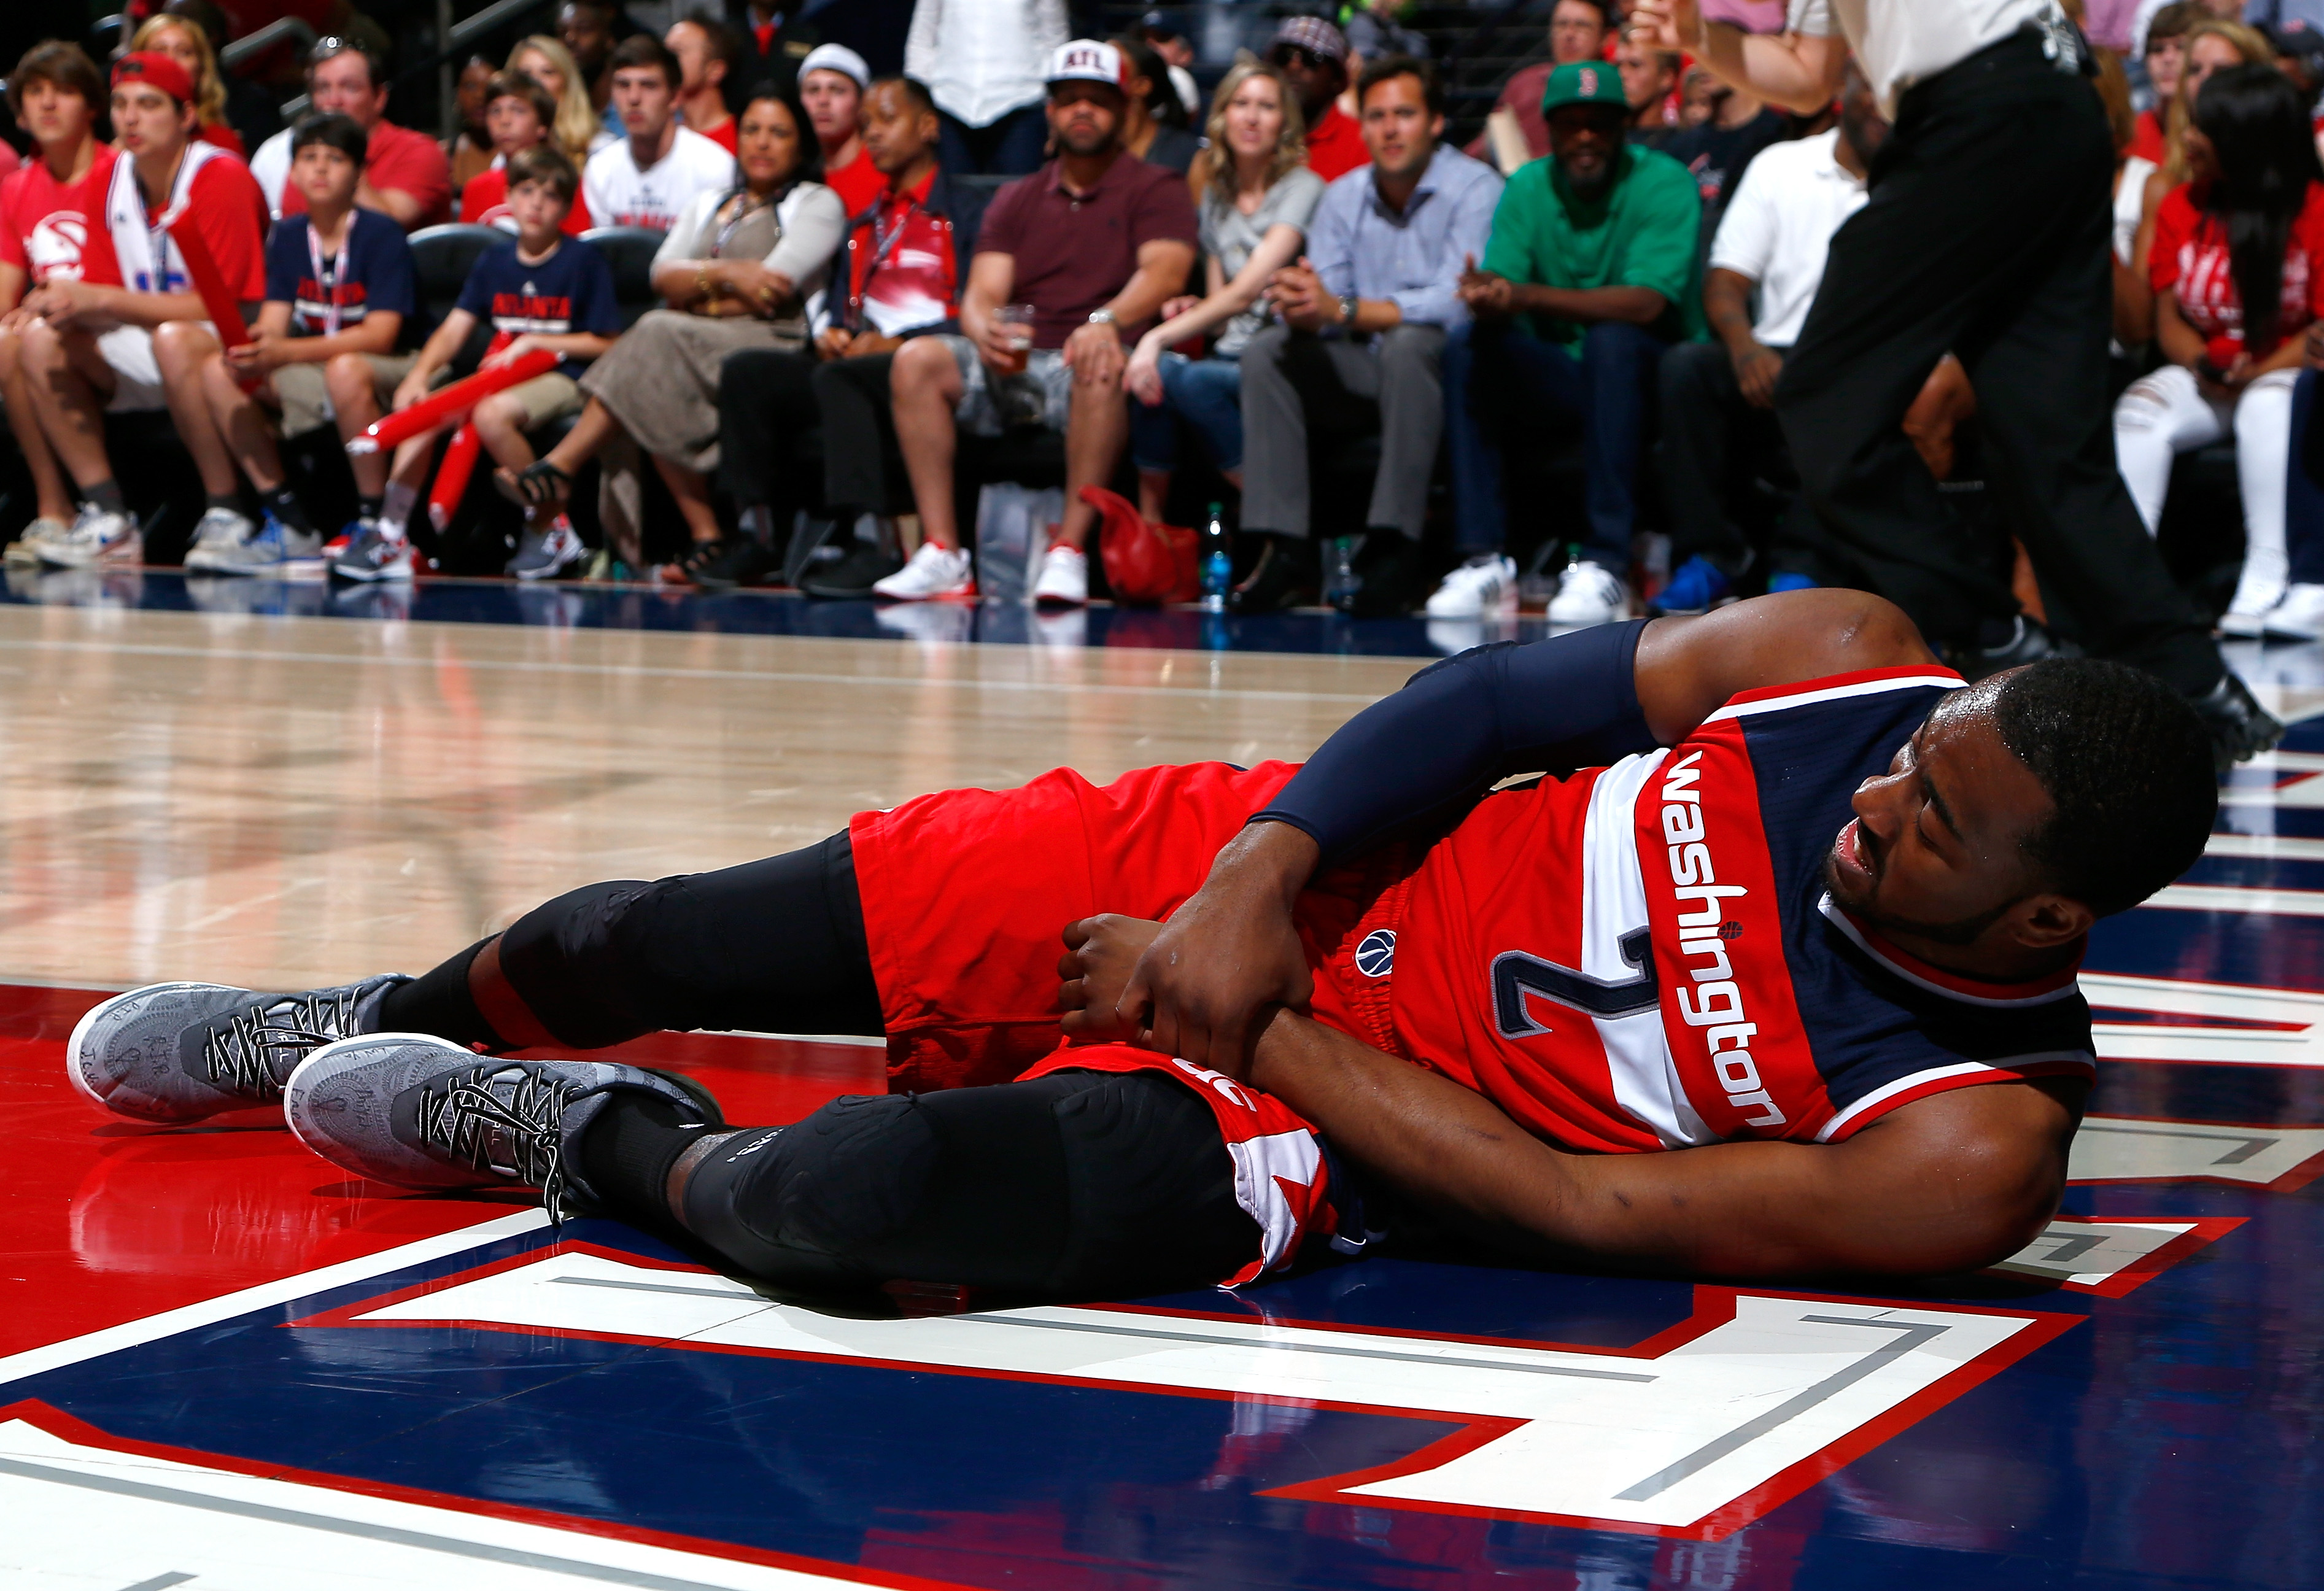 ATLANTA, GA - MAY 03:  John Wall #2 of the Washington Wizards grabs his wrist after missing a basket and landing on the floor against the Atlanta Hawks during Game One of the Eastern Conference Semifinals of the 2015 NBA Playoffs at Philips Arena on May 3